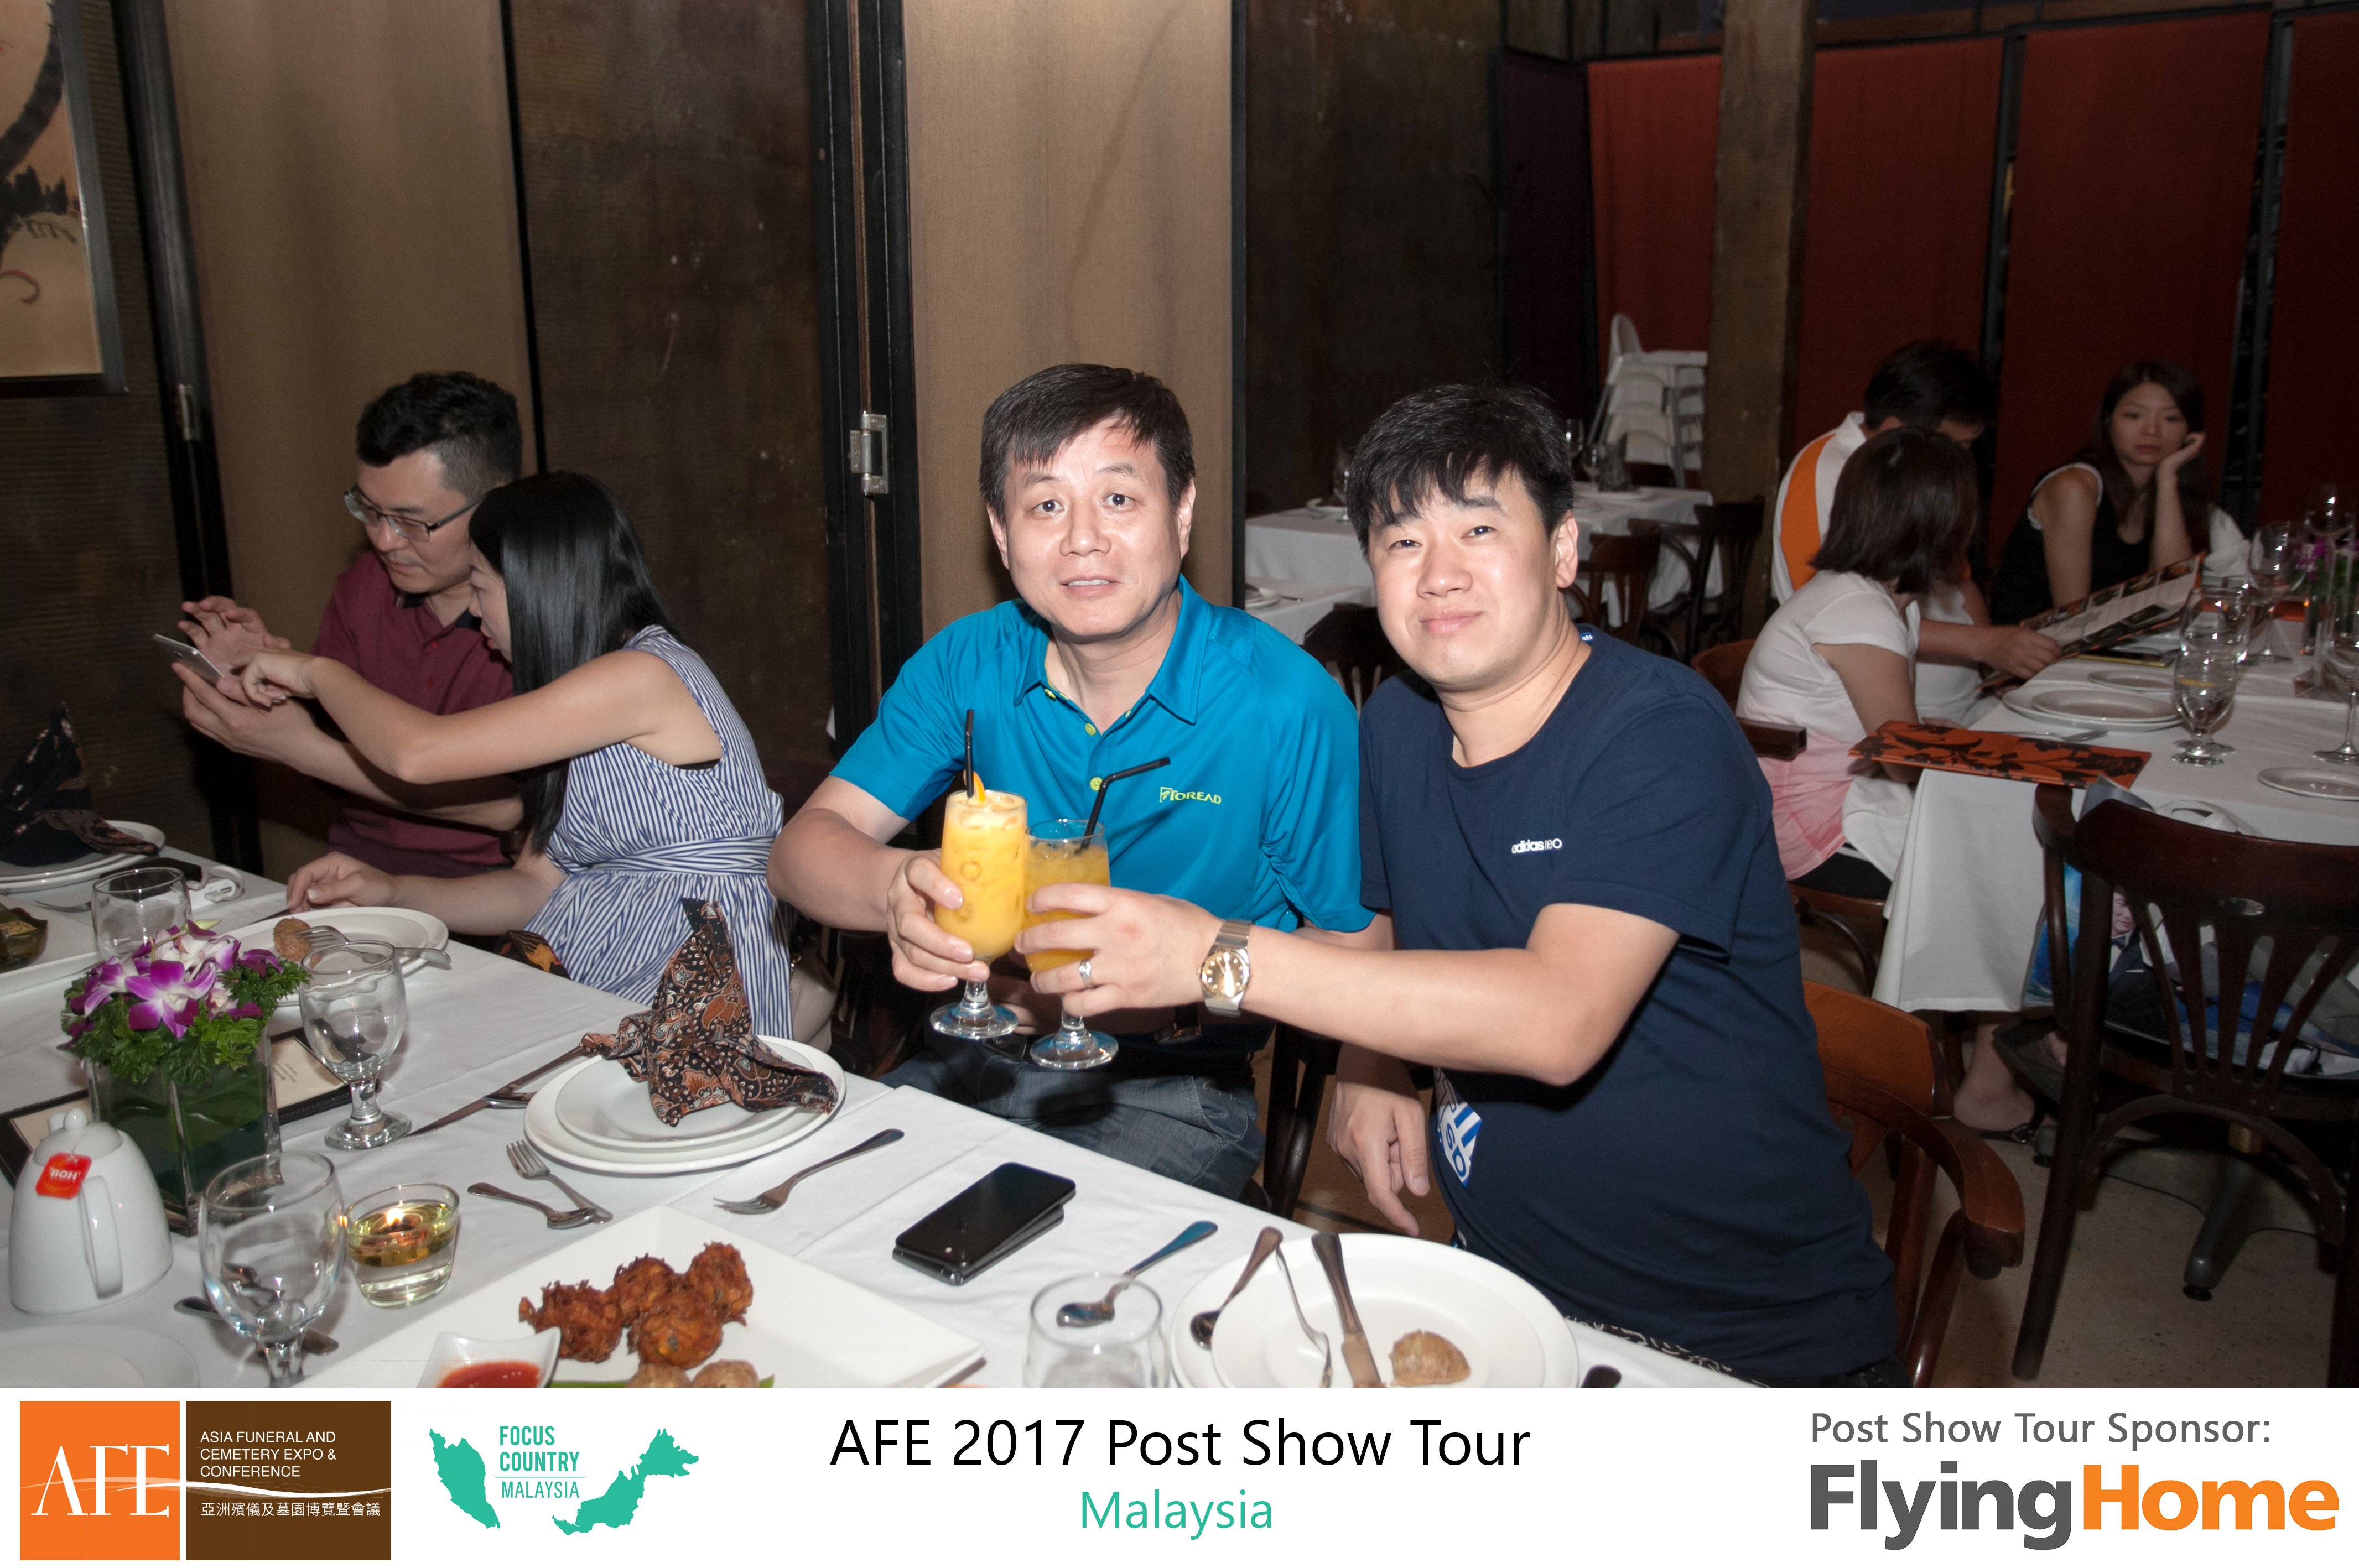 AFE Post Show Tour 2017 Day 3 -40